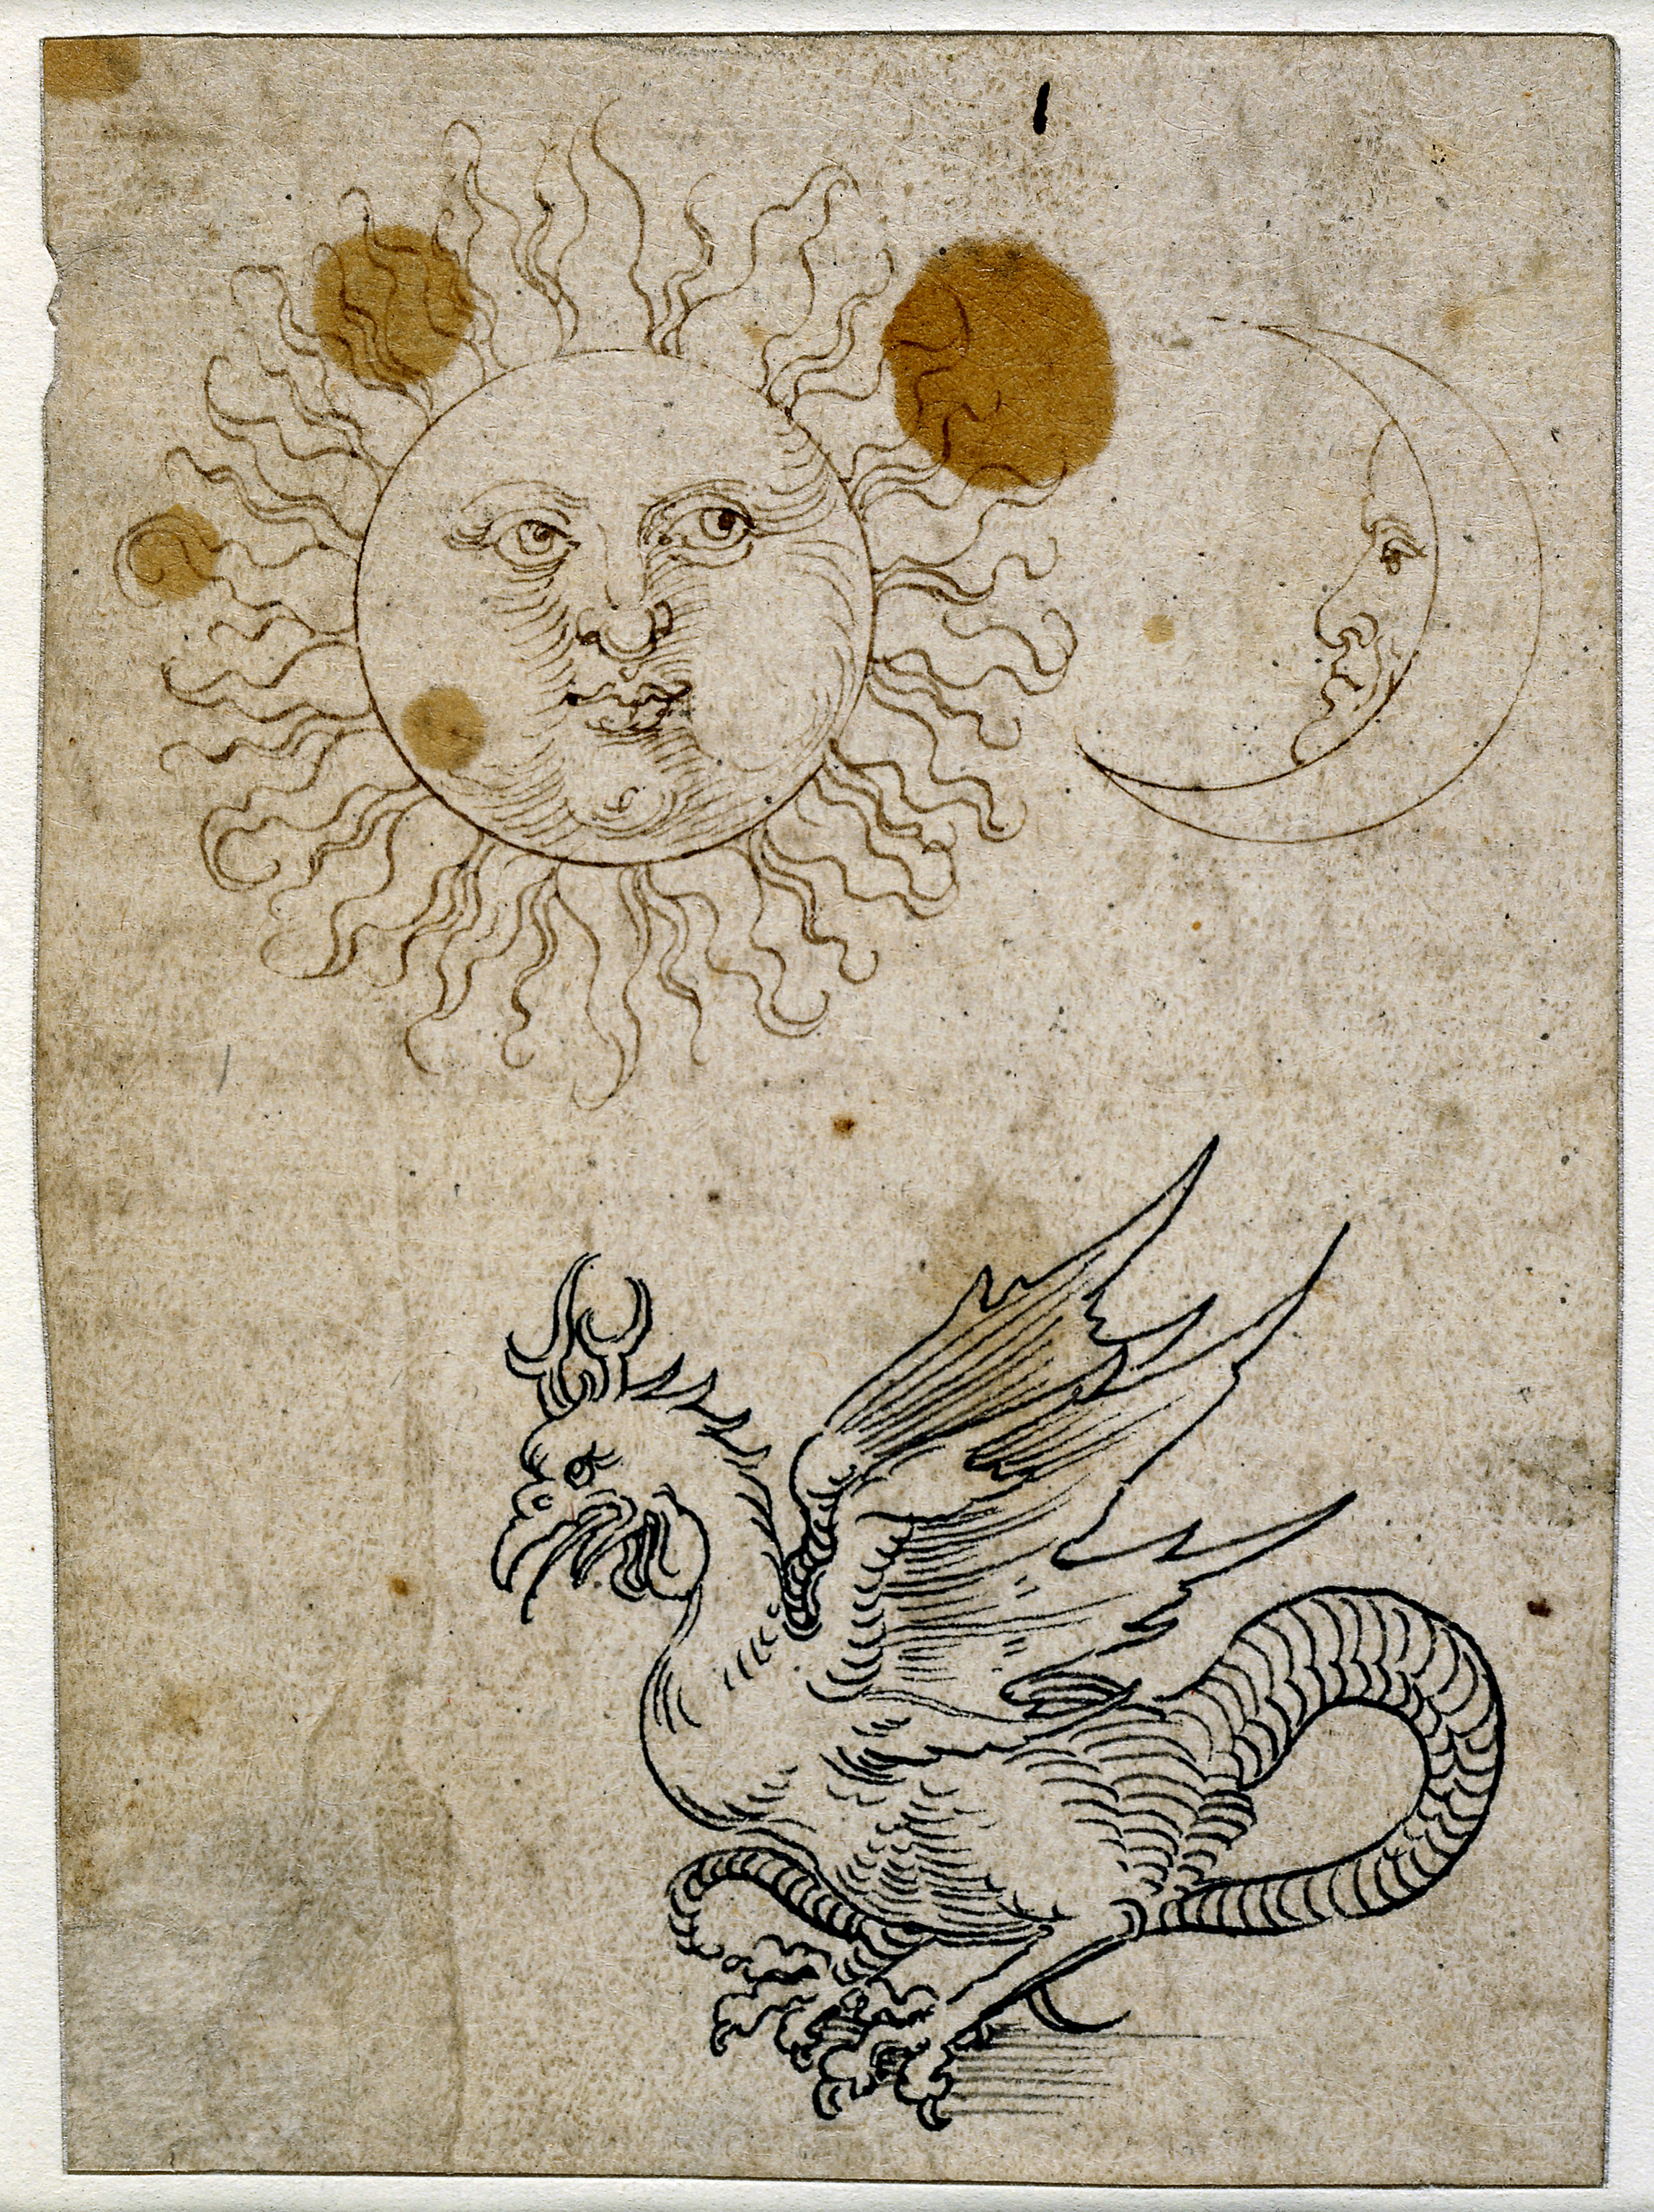 Pen and ink drawing of the sun and a dragon.